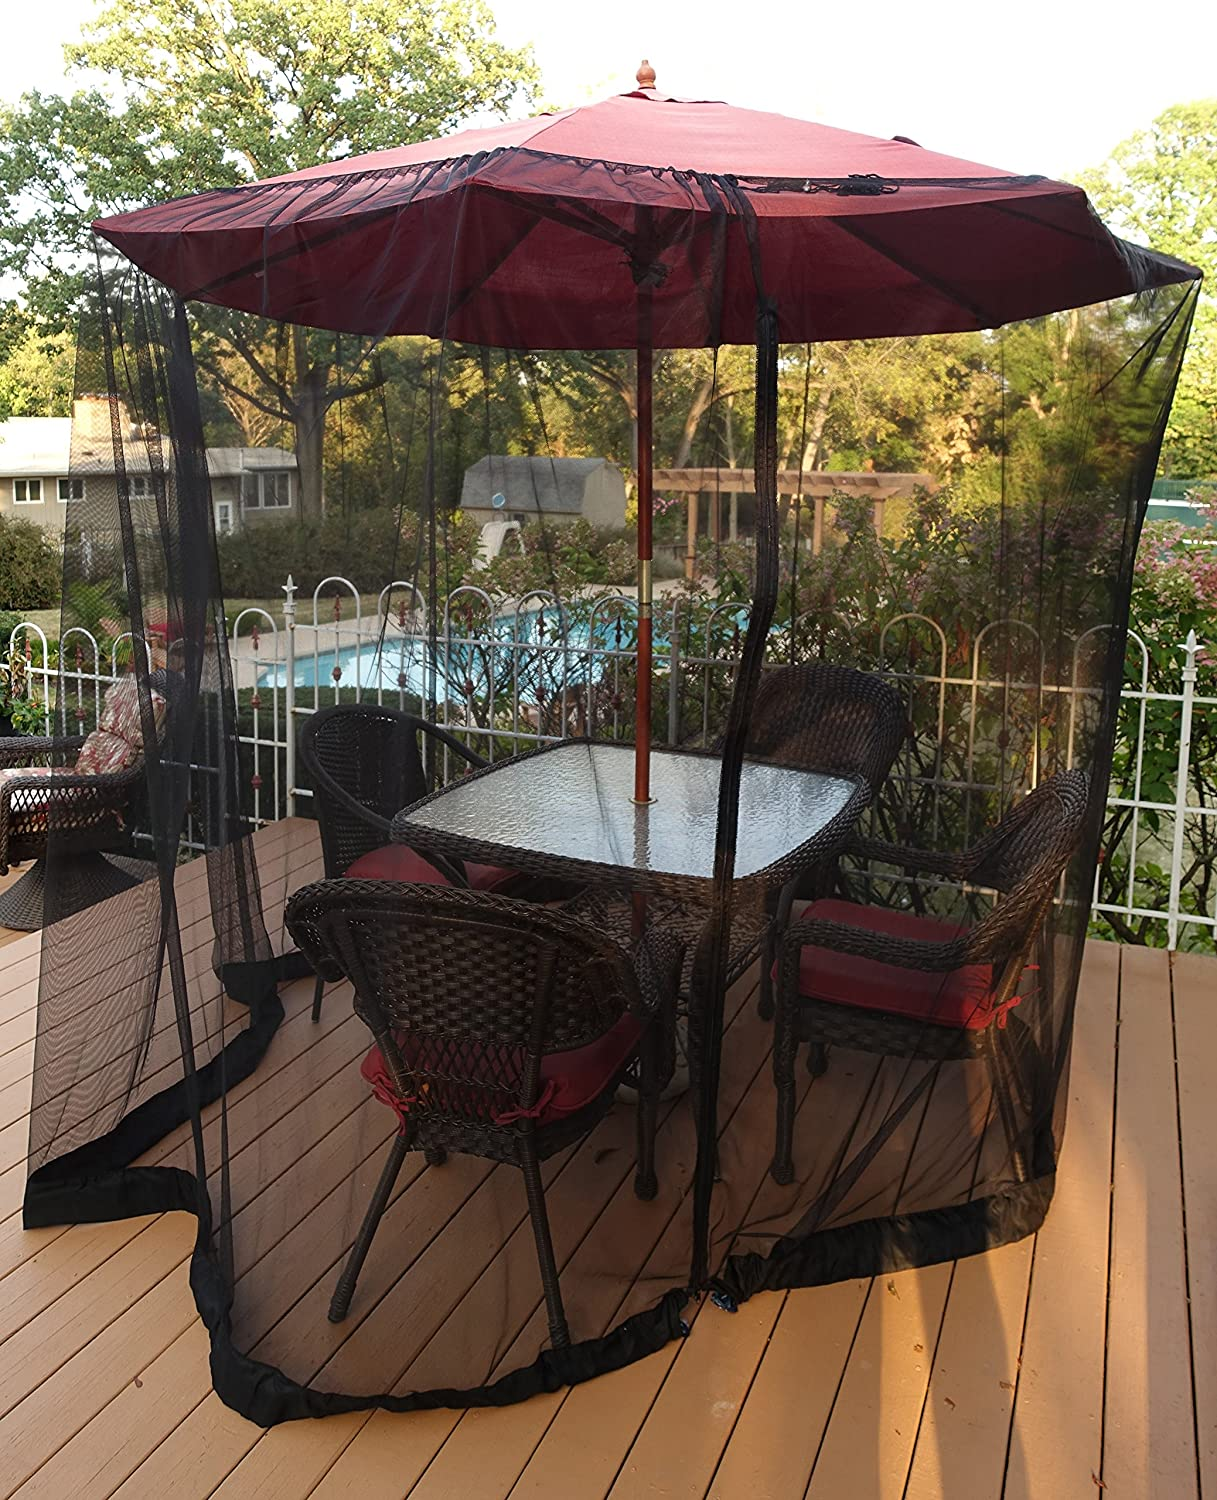 Patio Umbrella Mosquito Netting - Polyester Mesh Screen with Zipper Opening and Water Tube at Base to Hold in Place - Helps Protect from Mosquitoes - Fits 9FT Umbrellas and Patio Tables - Black B07466H7DF